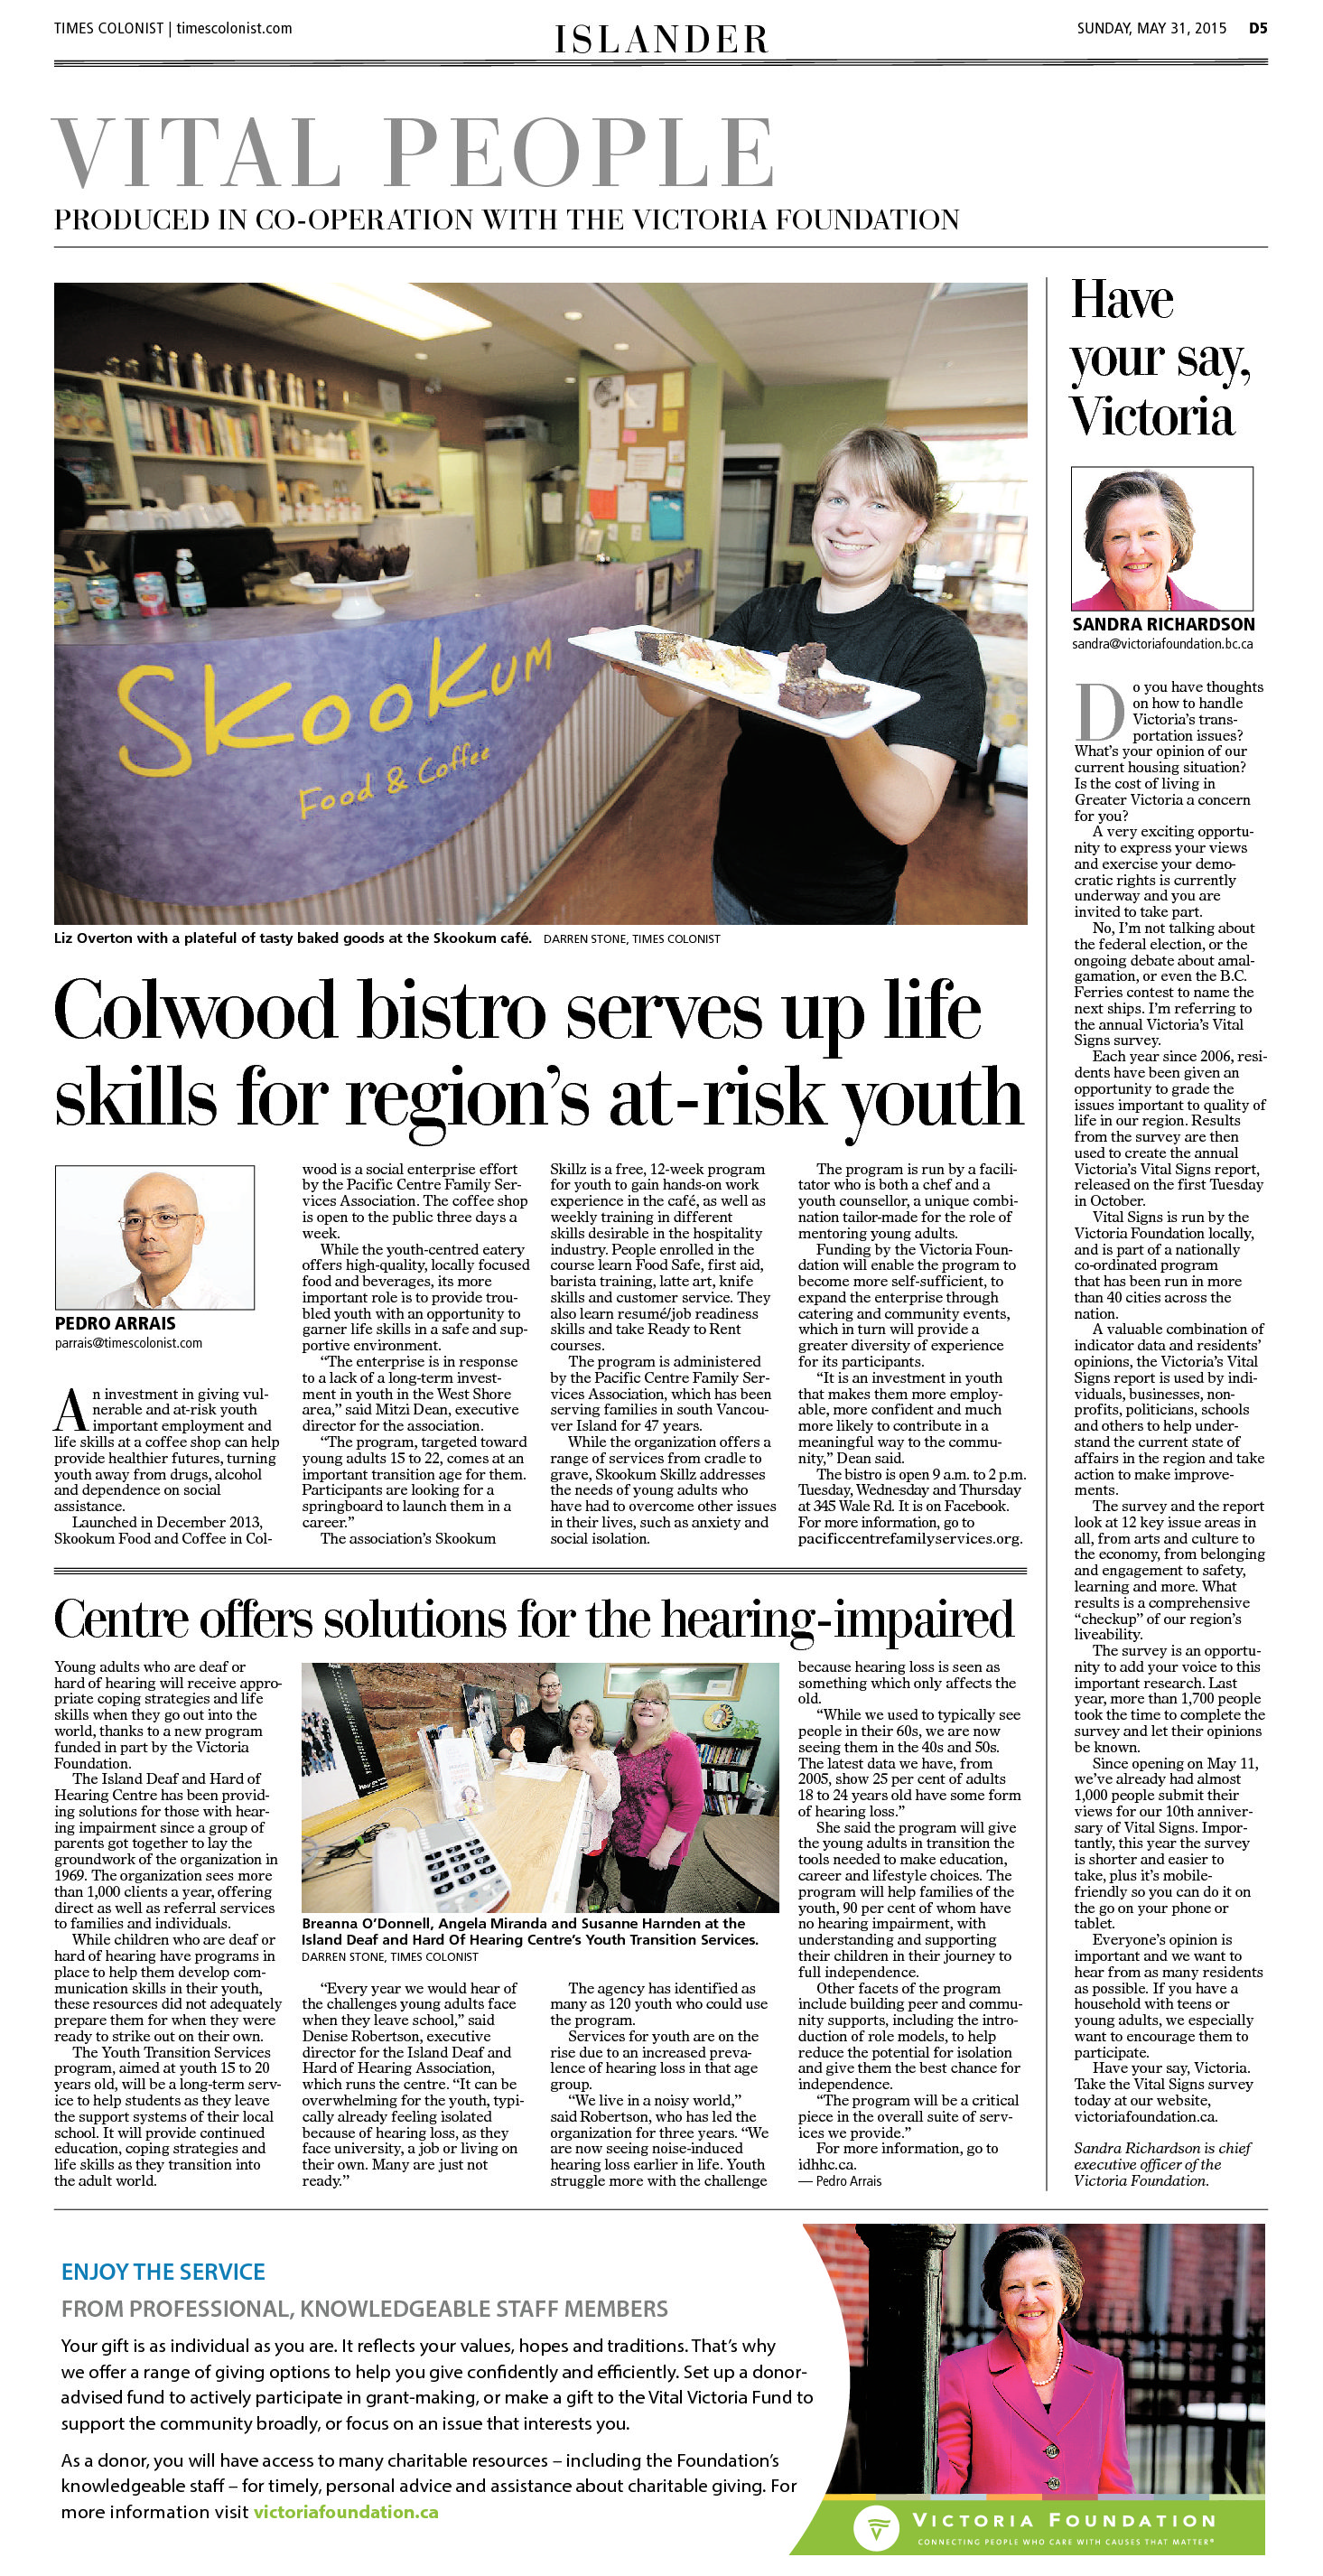 Times Colonist Vital People May 31, 2015